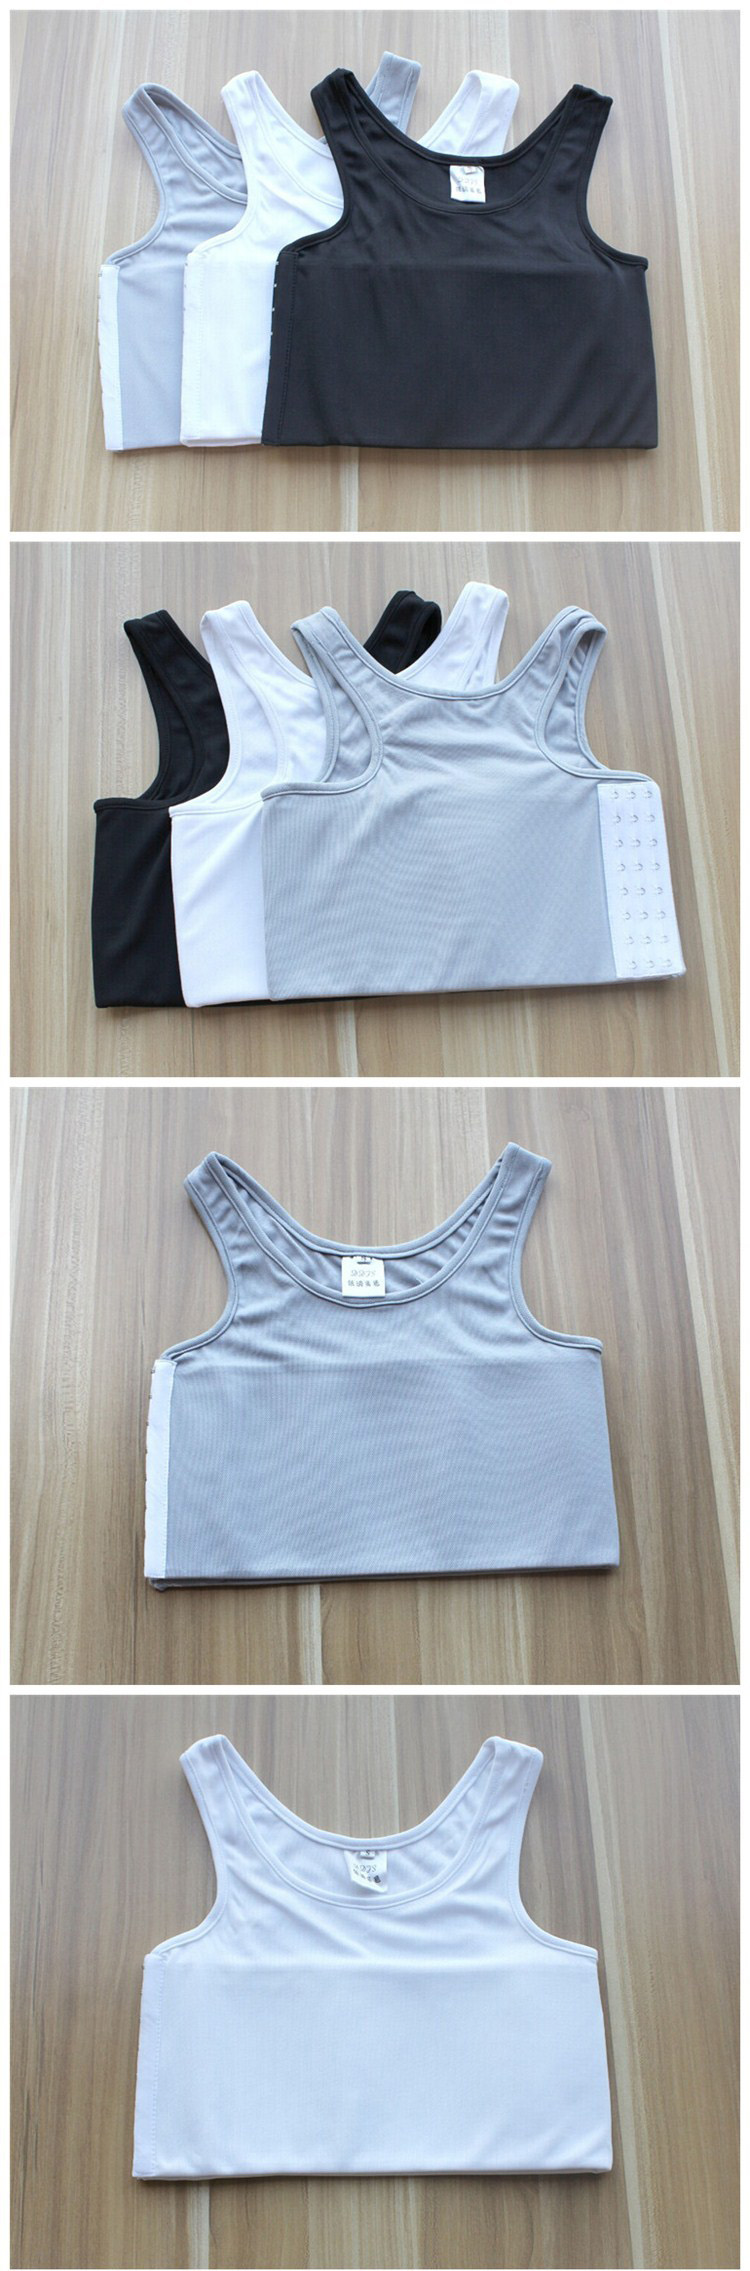 Summer Mesh Chest Breathable Corset Flat Breast Binder for Tomboy Lesbian Trans Short Vest Binder S-4xl plus size Crop Top